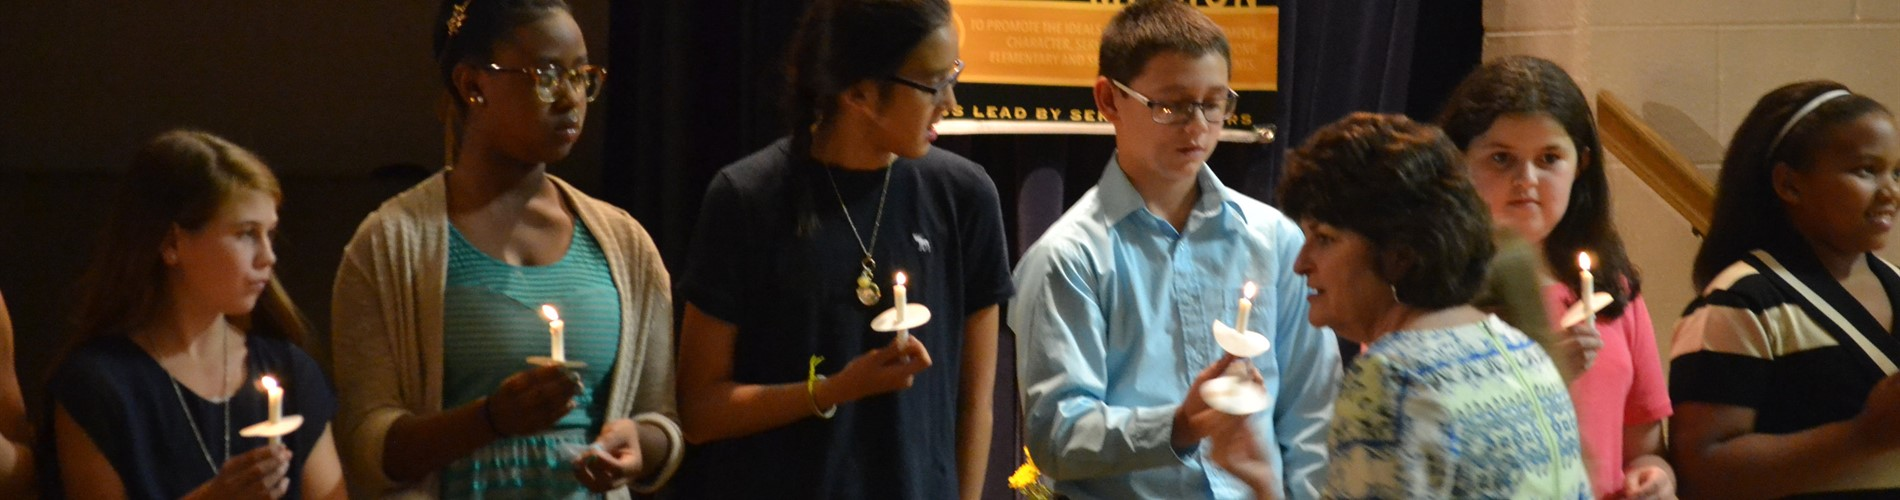 Students holding candles during Jr Beta ceremony